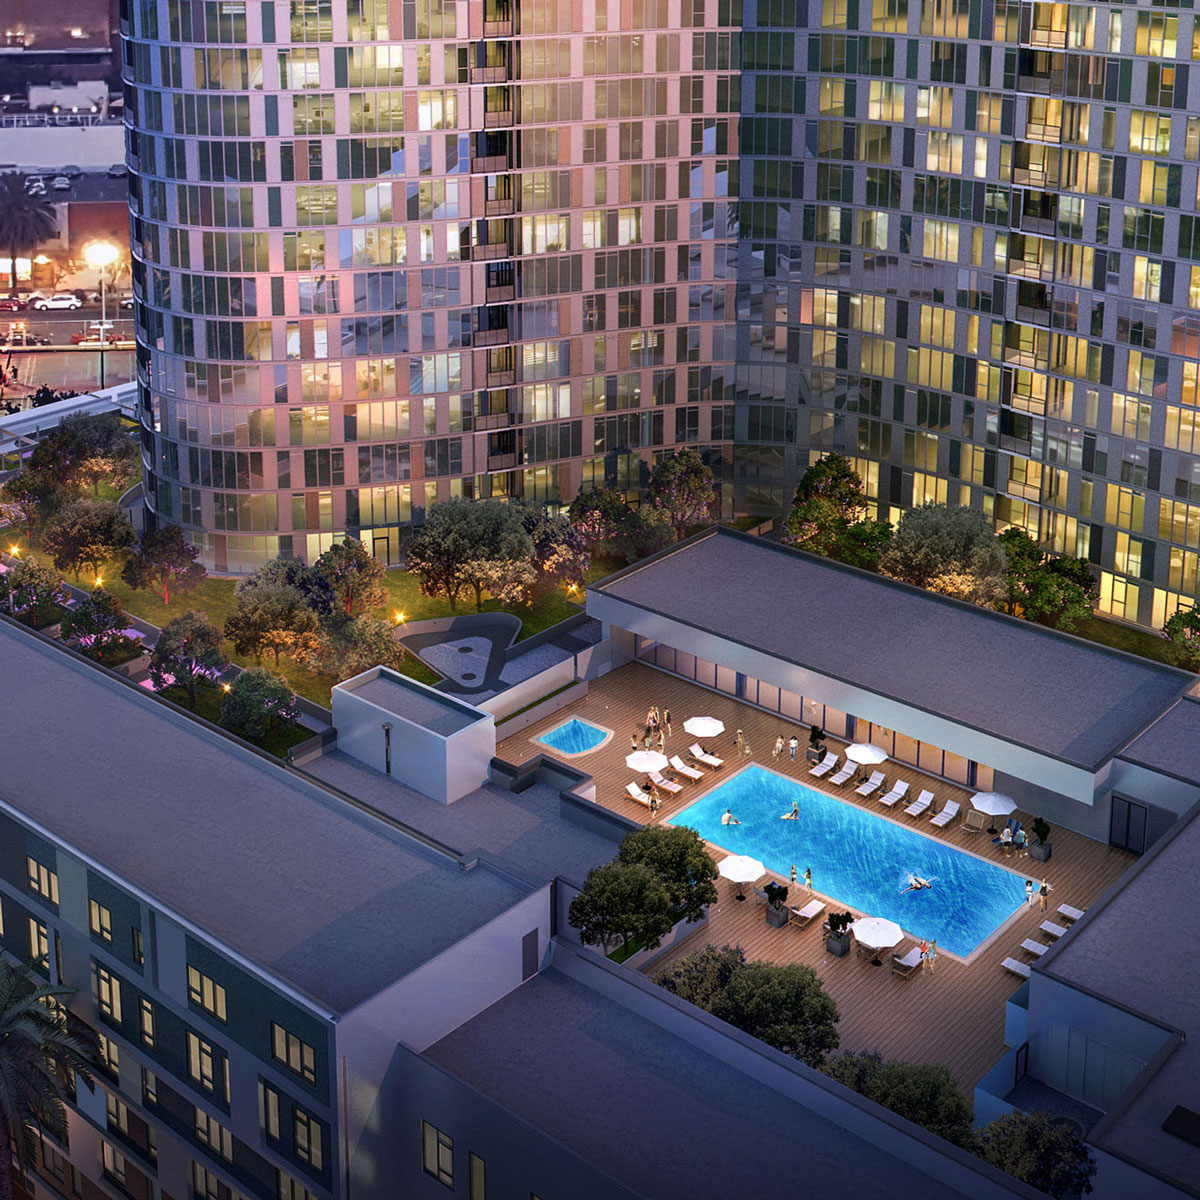 One Acre Rooftop Park & Pool